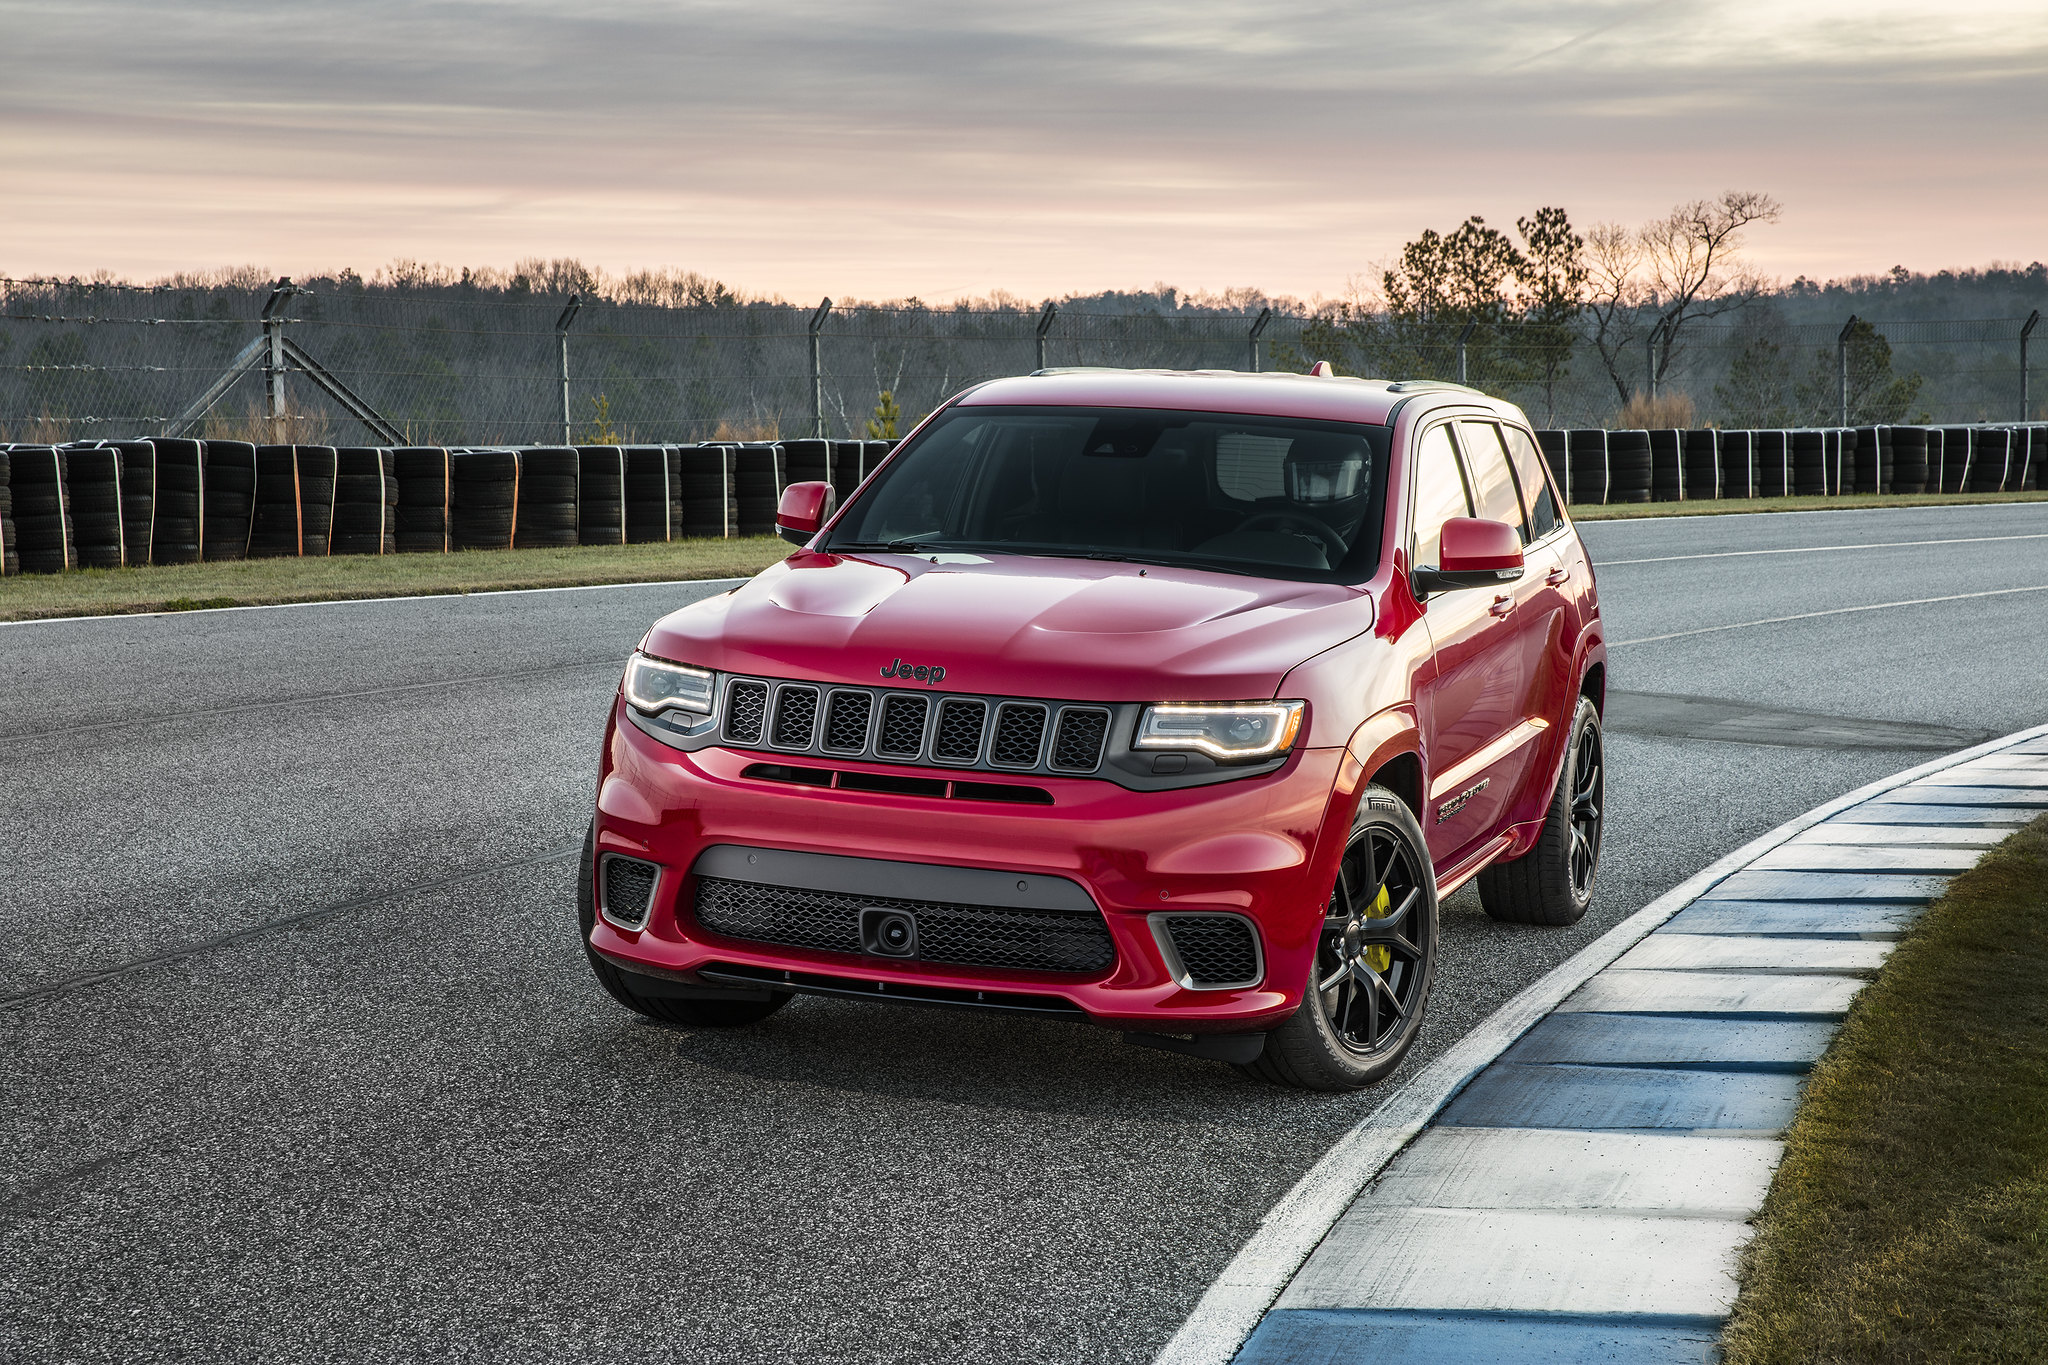 2018 Grand Cherokee Trackhawk priced from $85,900